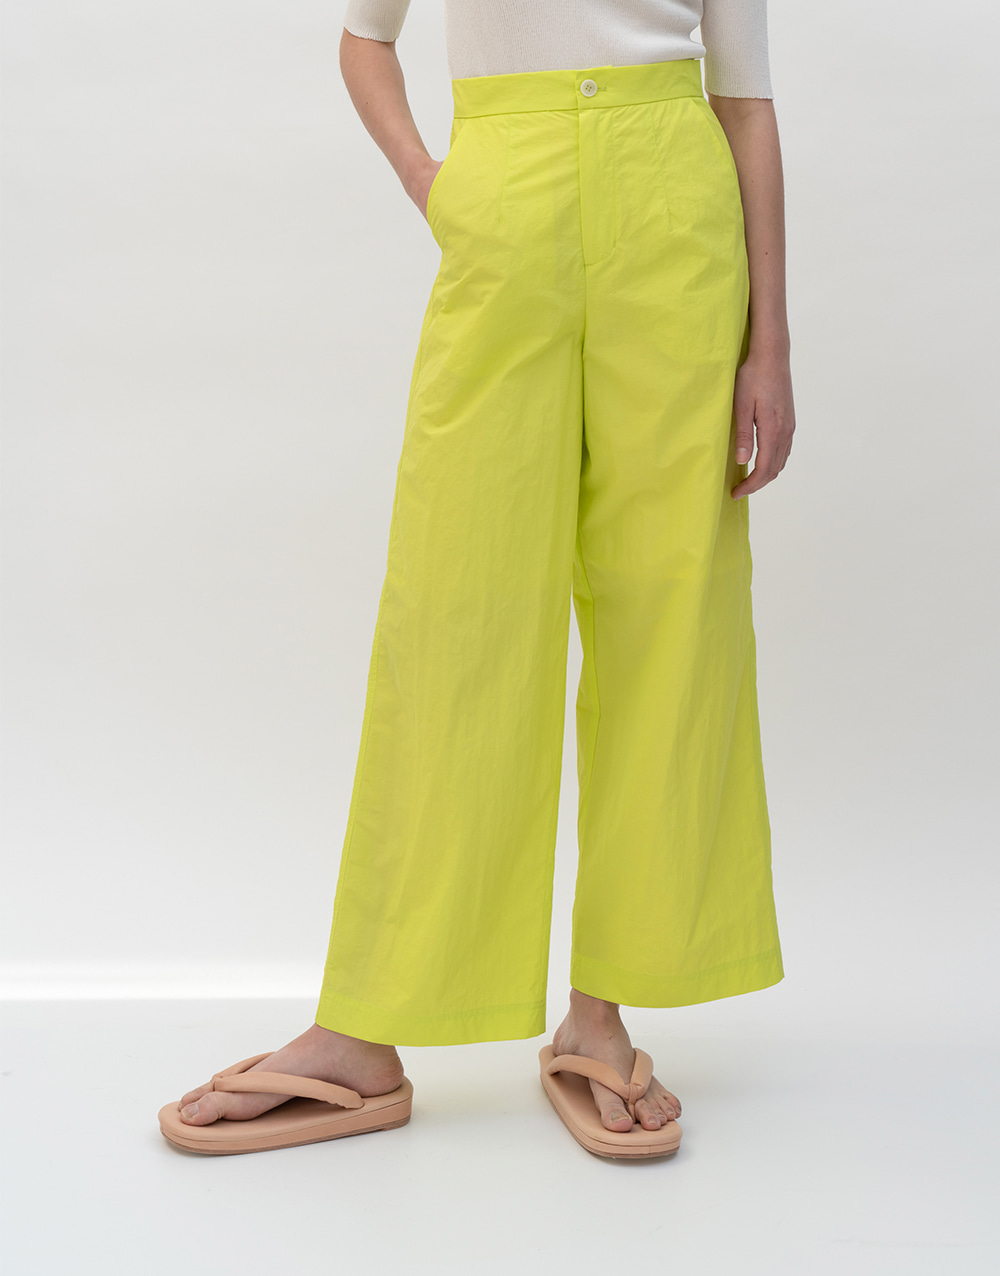 GBH APPAREL ADULT  Crispy Wide Pants LIME